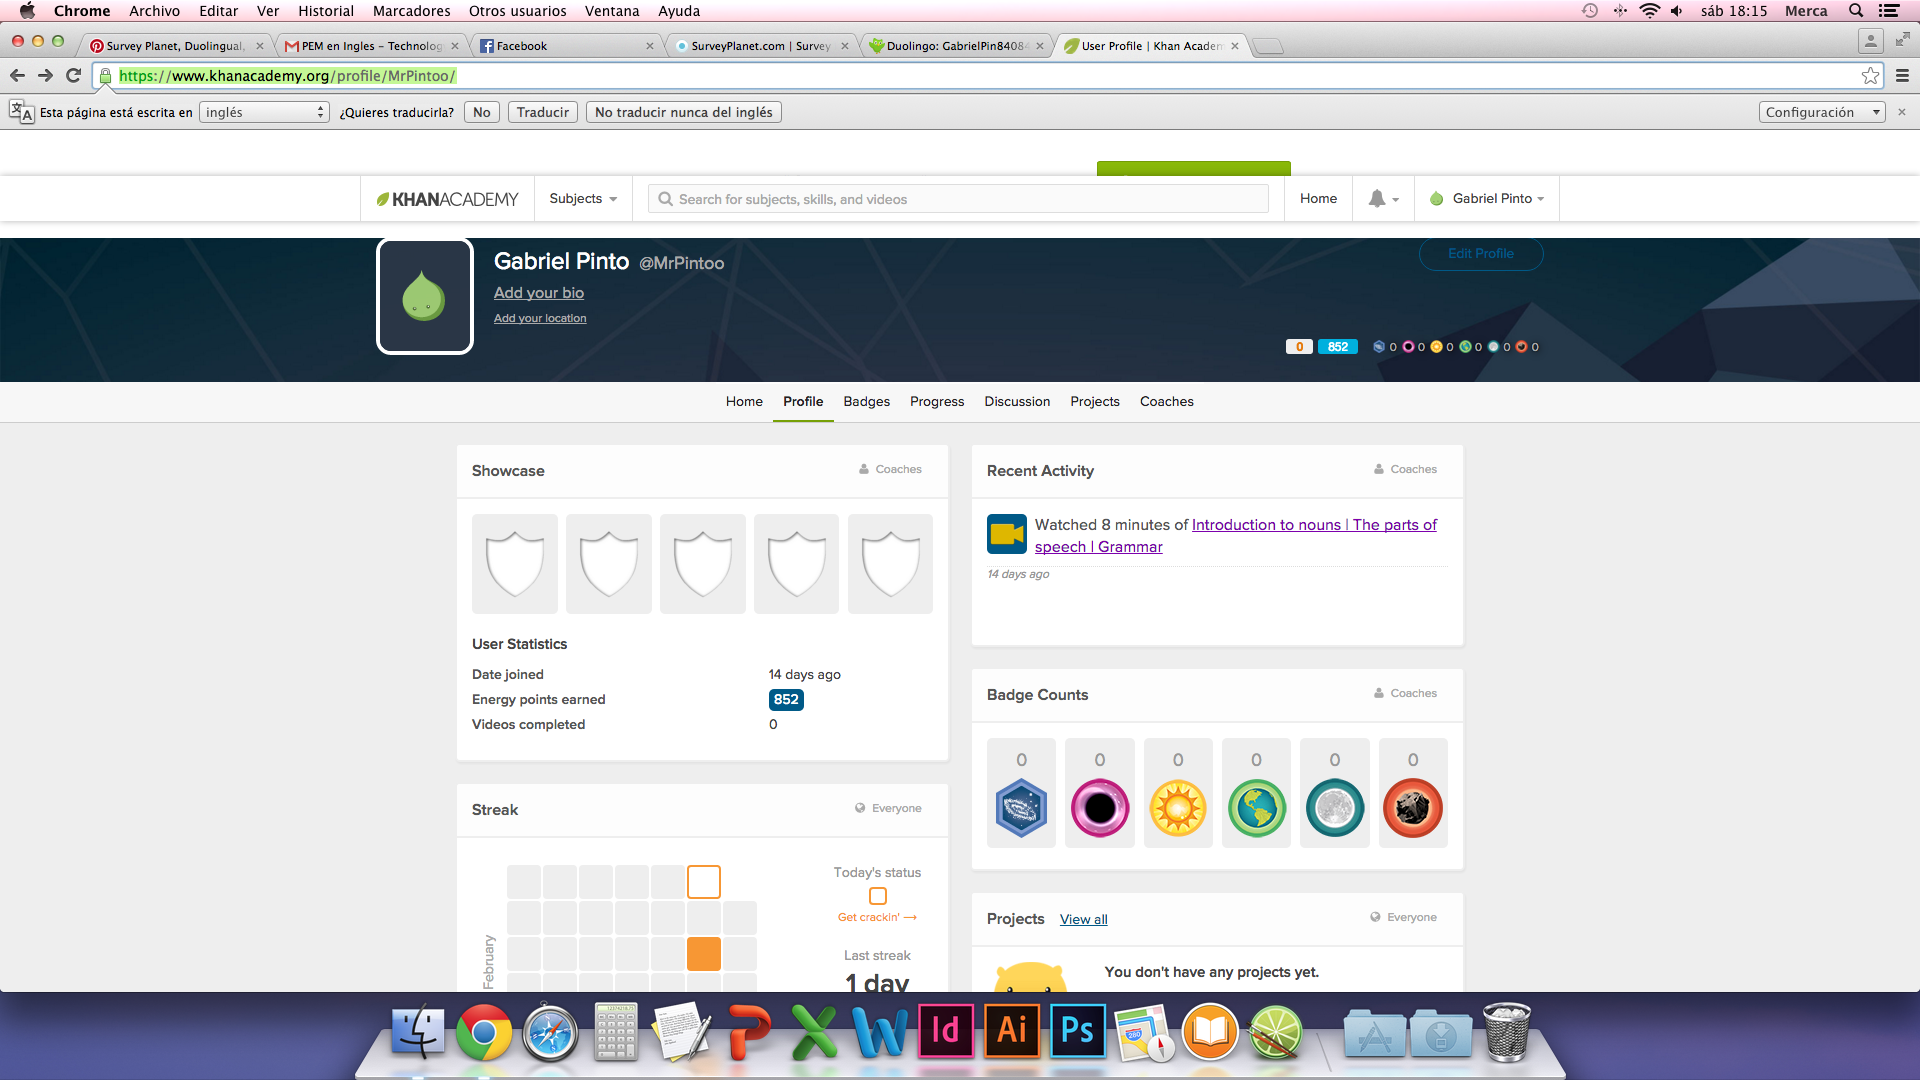 Check out my profile for You can earn